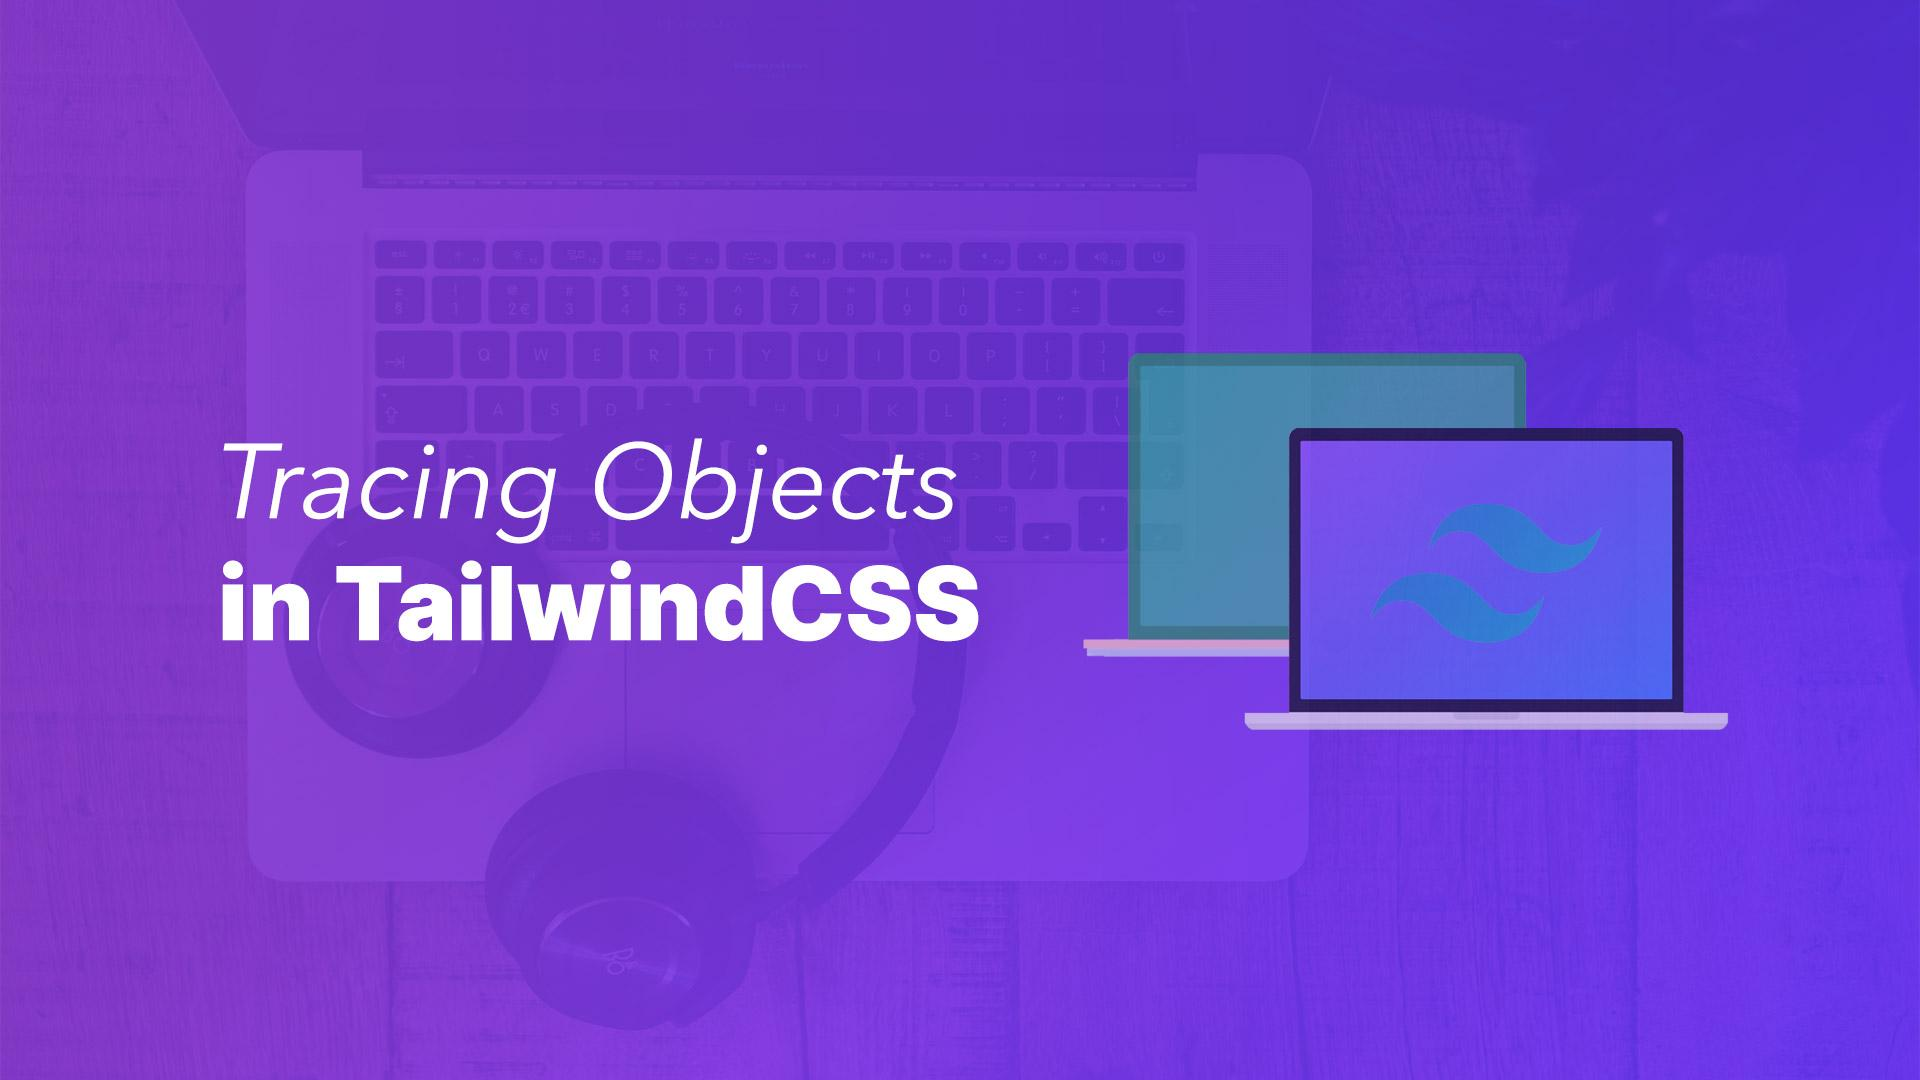 Tracing Objects in TailwindCSS